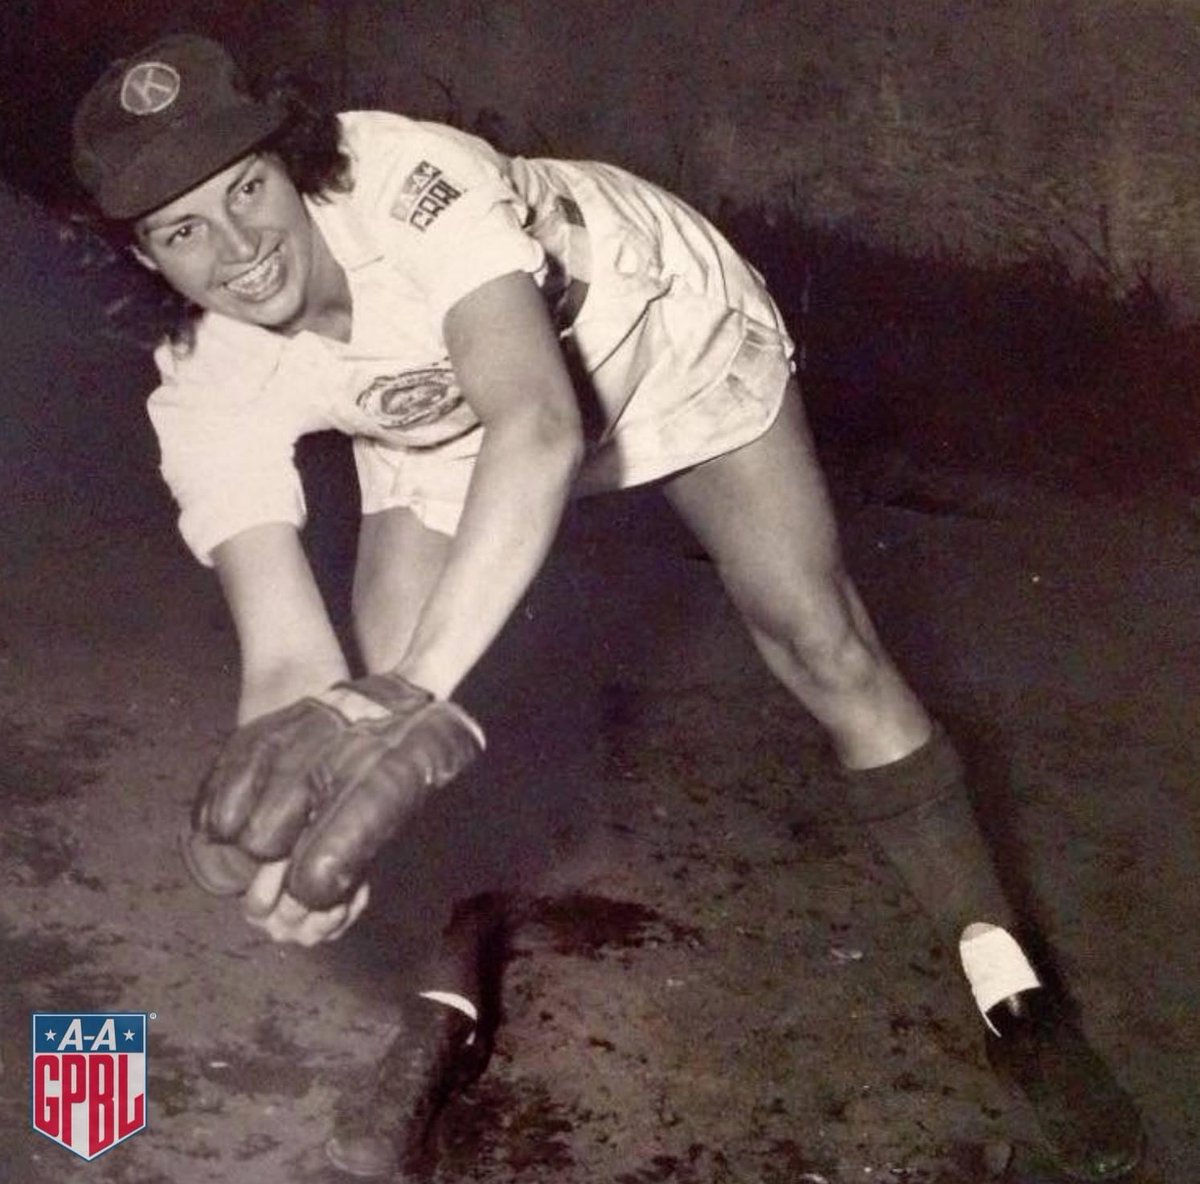 Christine Jewitt Beckett played two seasons in the #AAGPBL as an outfielder for the Kenosha Comets and was traded to Peoria halfway into the 1949 season.  STATS: